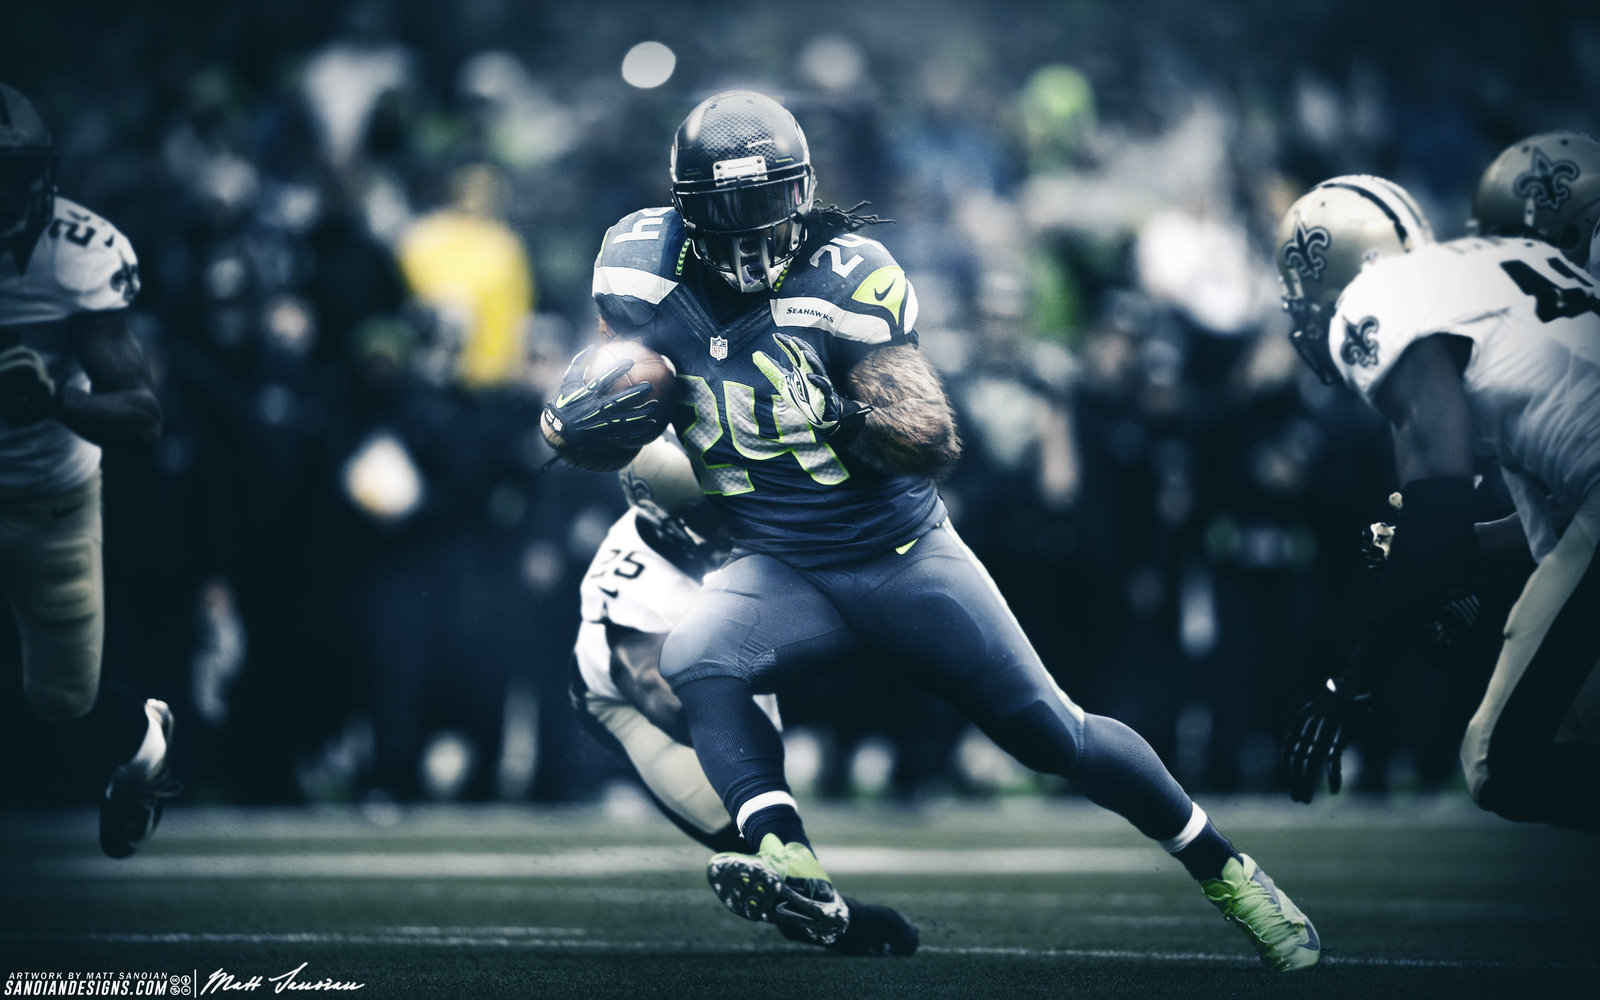 Pictures Of Marshawn Lynch Iphone Wallpaper